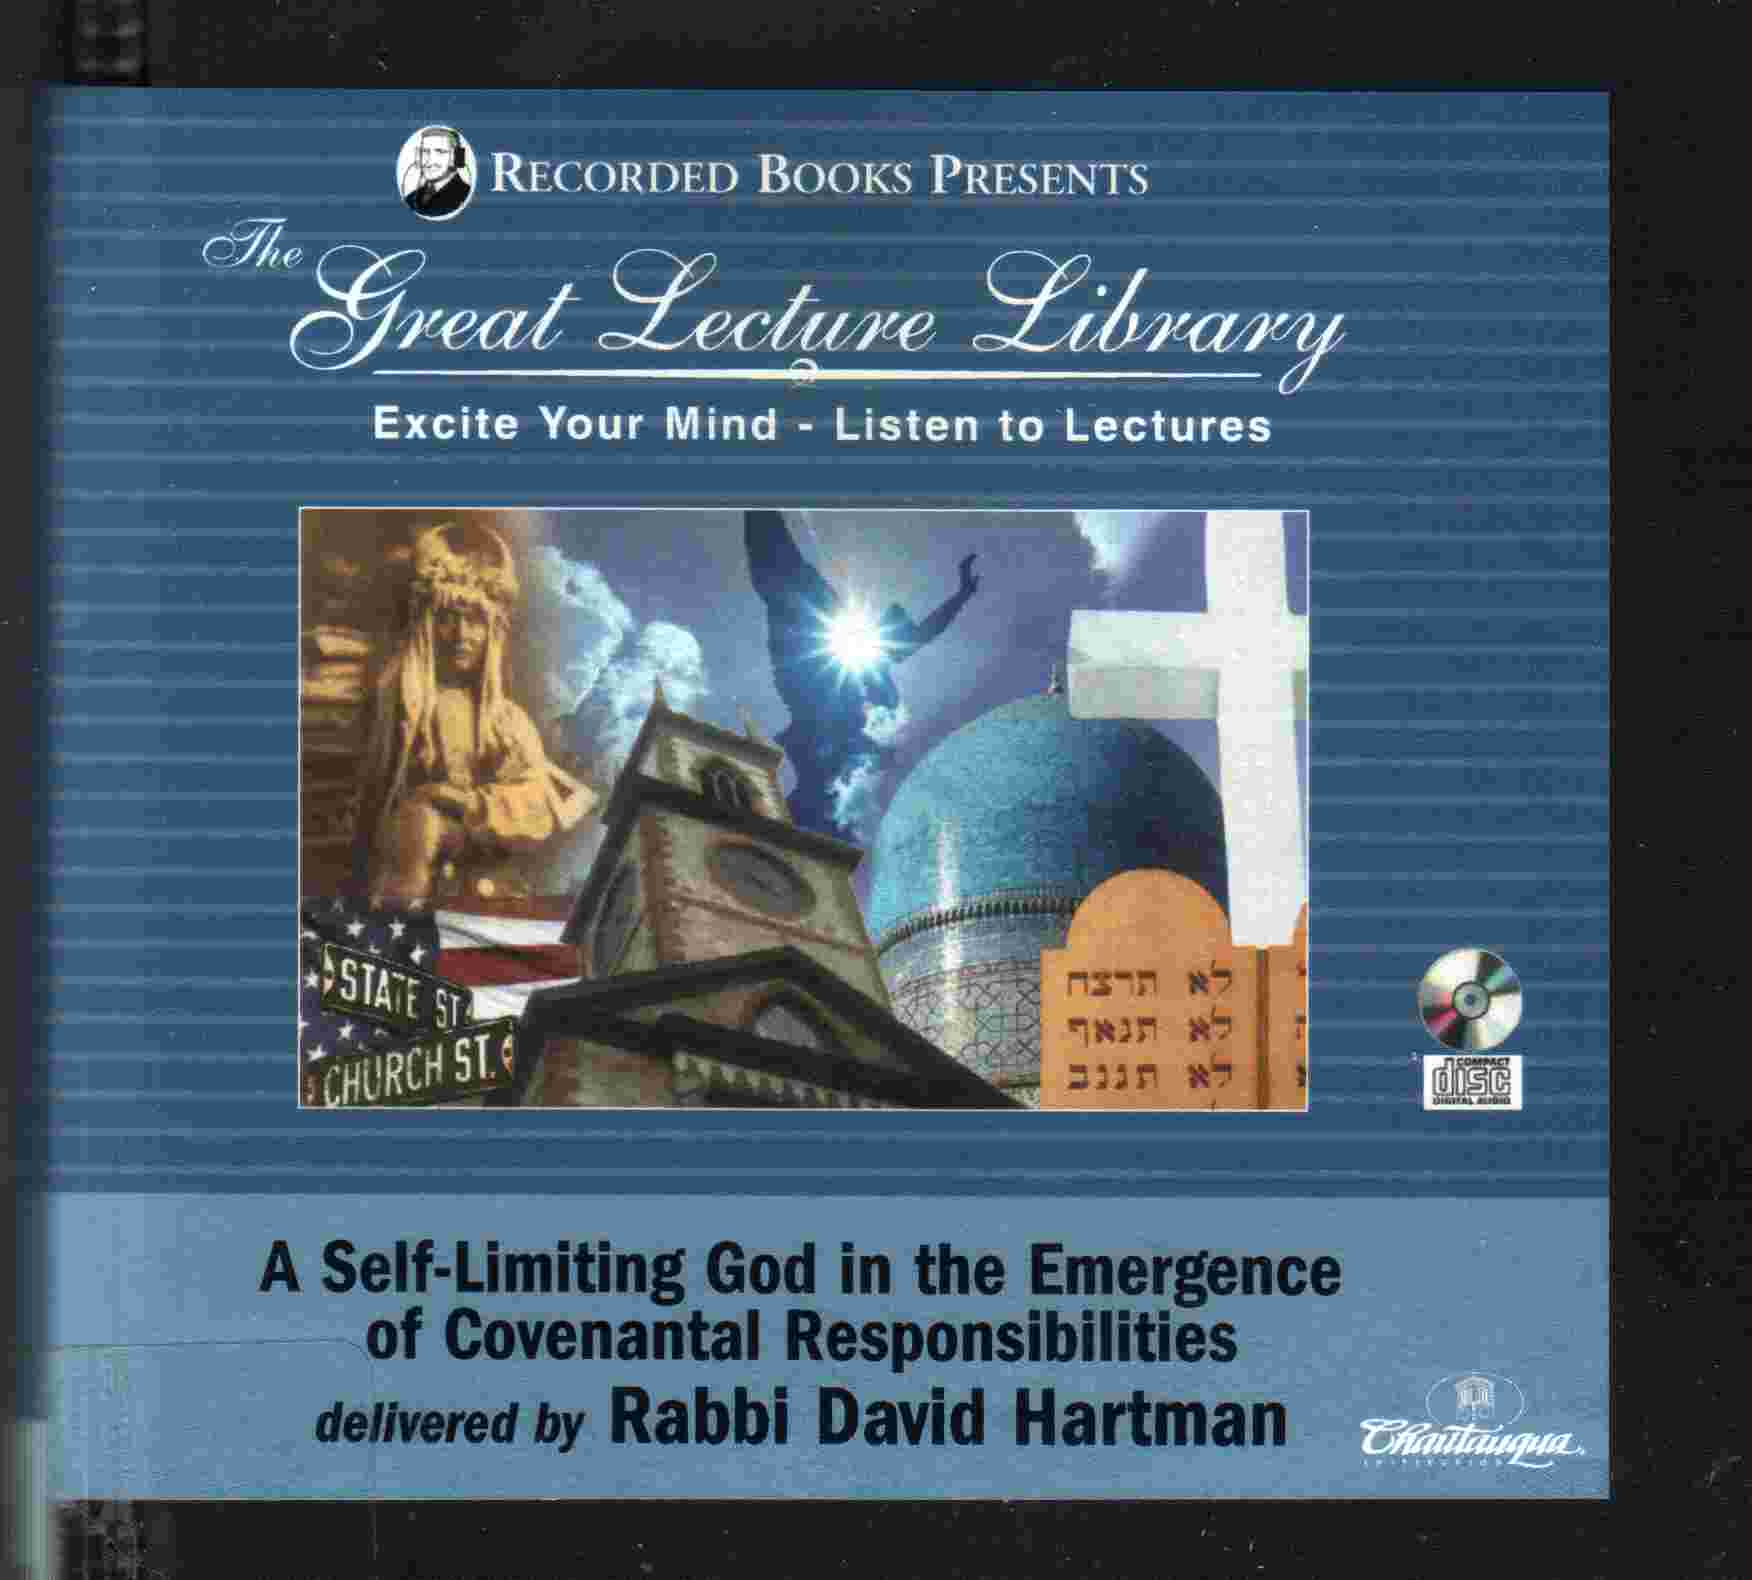 The Great Lecture LIbrary by Rabbi David Hartman